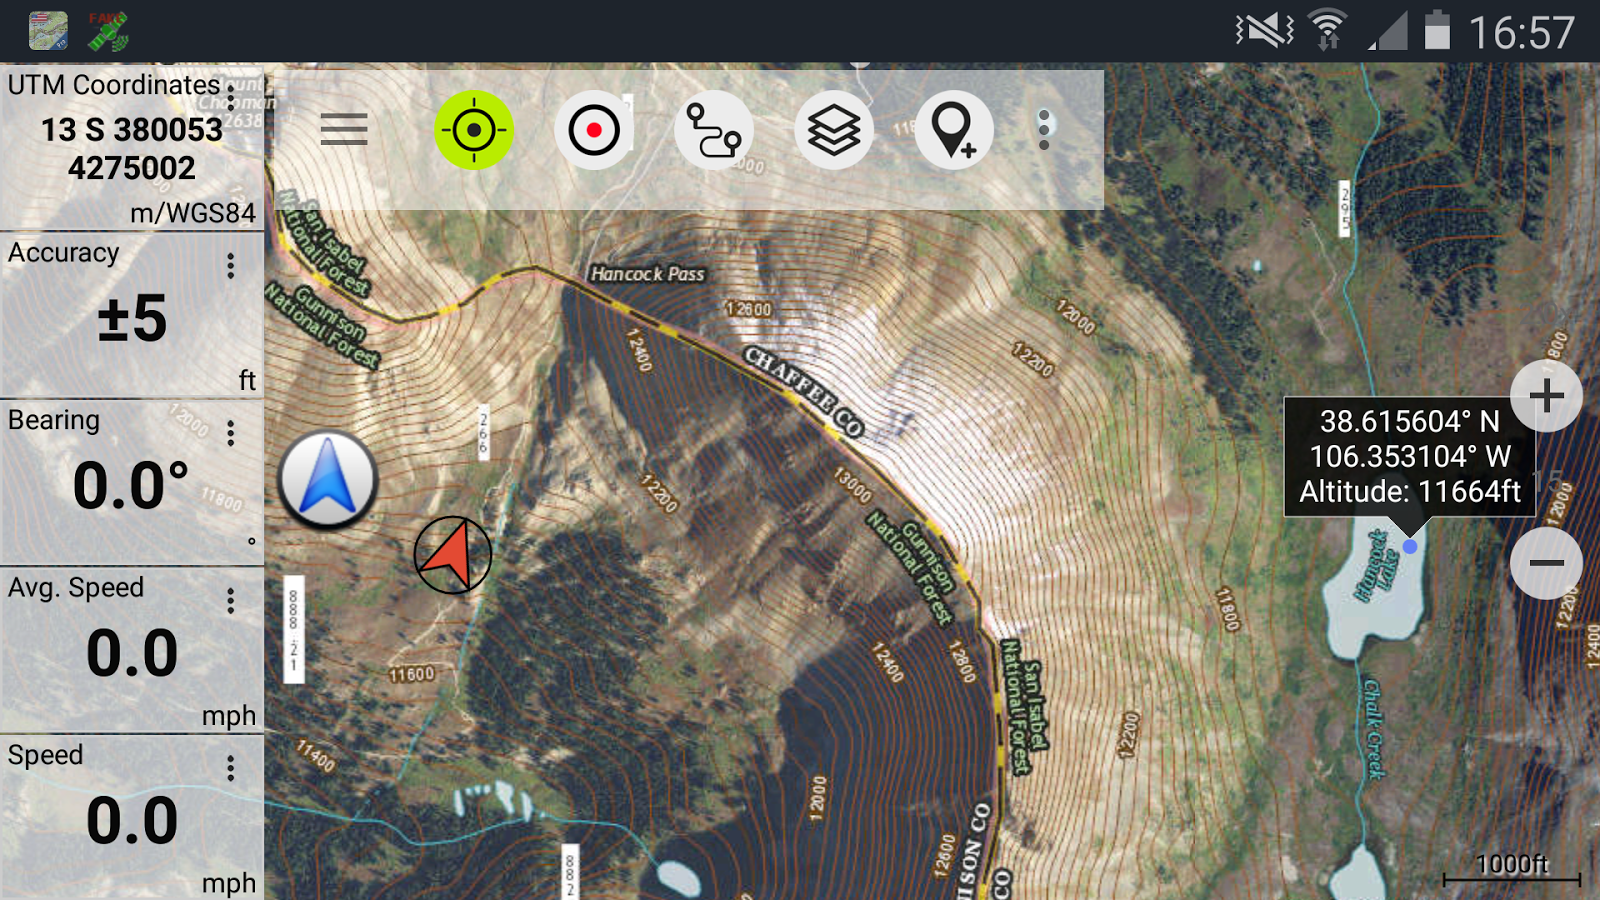 US Topo Maps Pro Android Apps On Google Play - Us Digital Topographic Maps